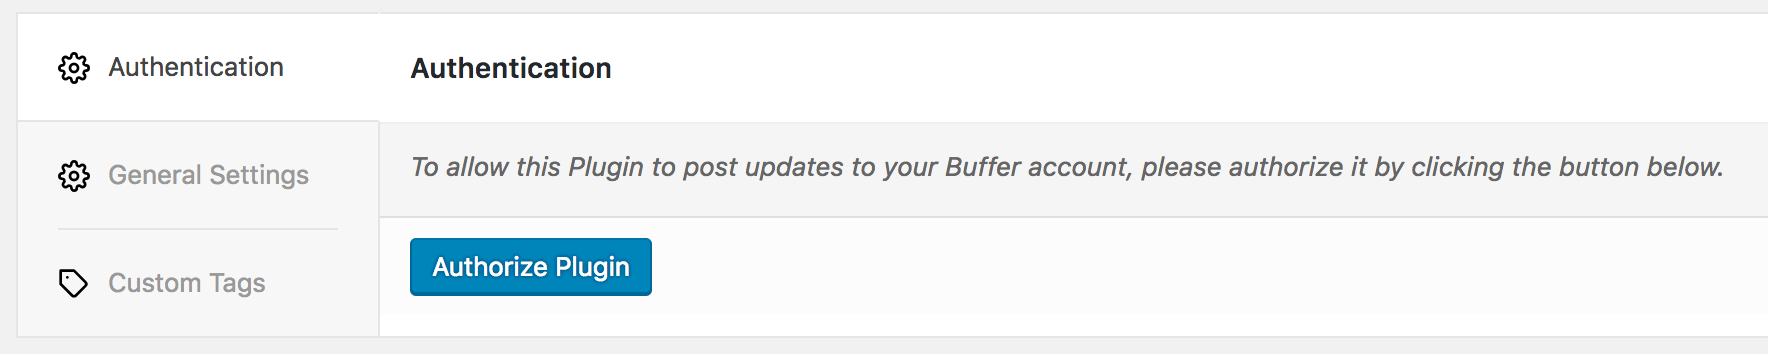 WordPress to Buffer Pro: Authentication Settings: Authorize